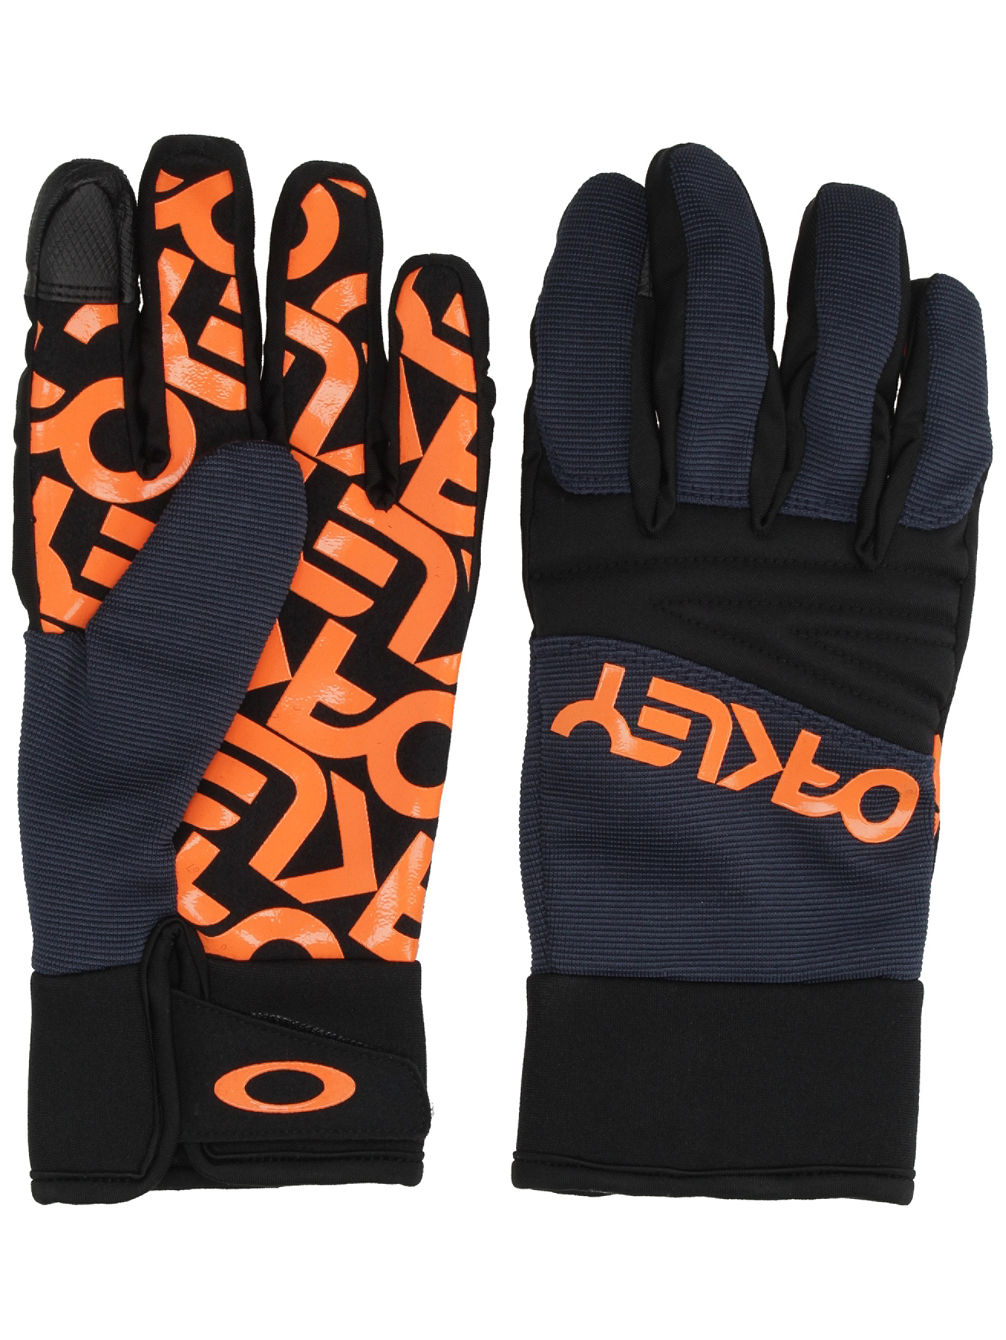 Factory Park Gloves